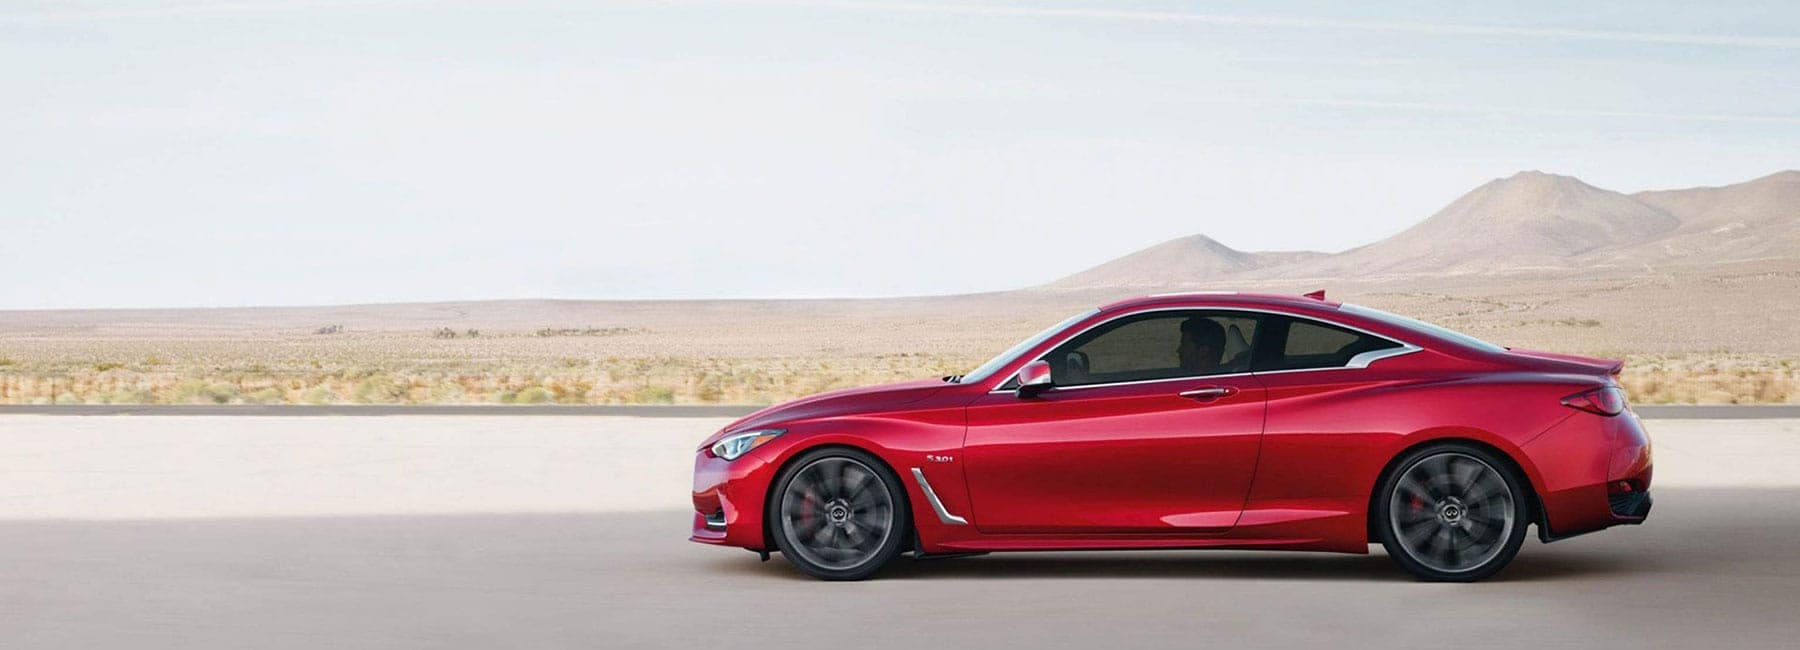 The sideview of a red 2019 INFINITI Q60 driving down a road in a desert